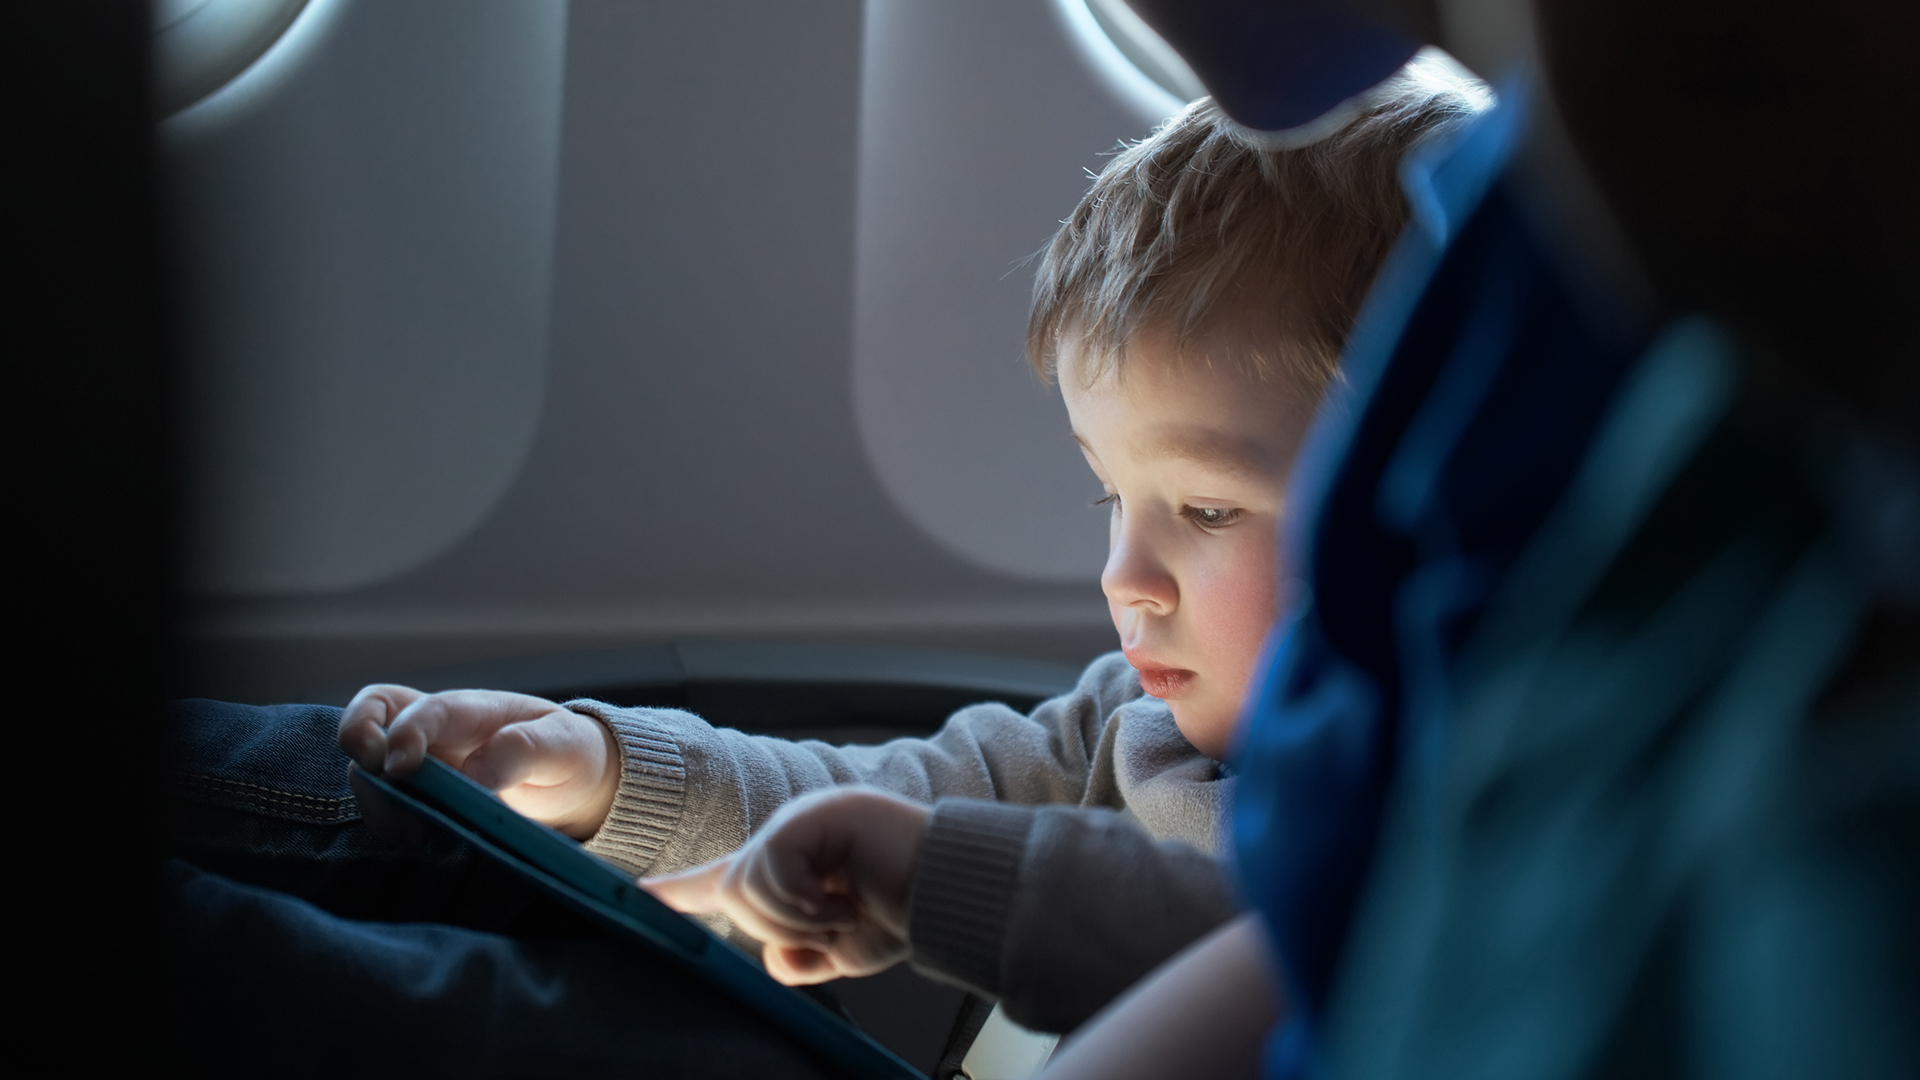 A child using a tablet on an airplane